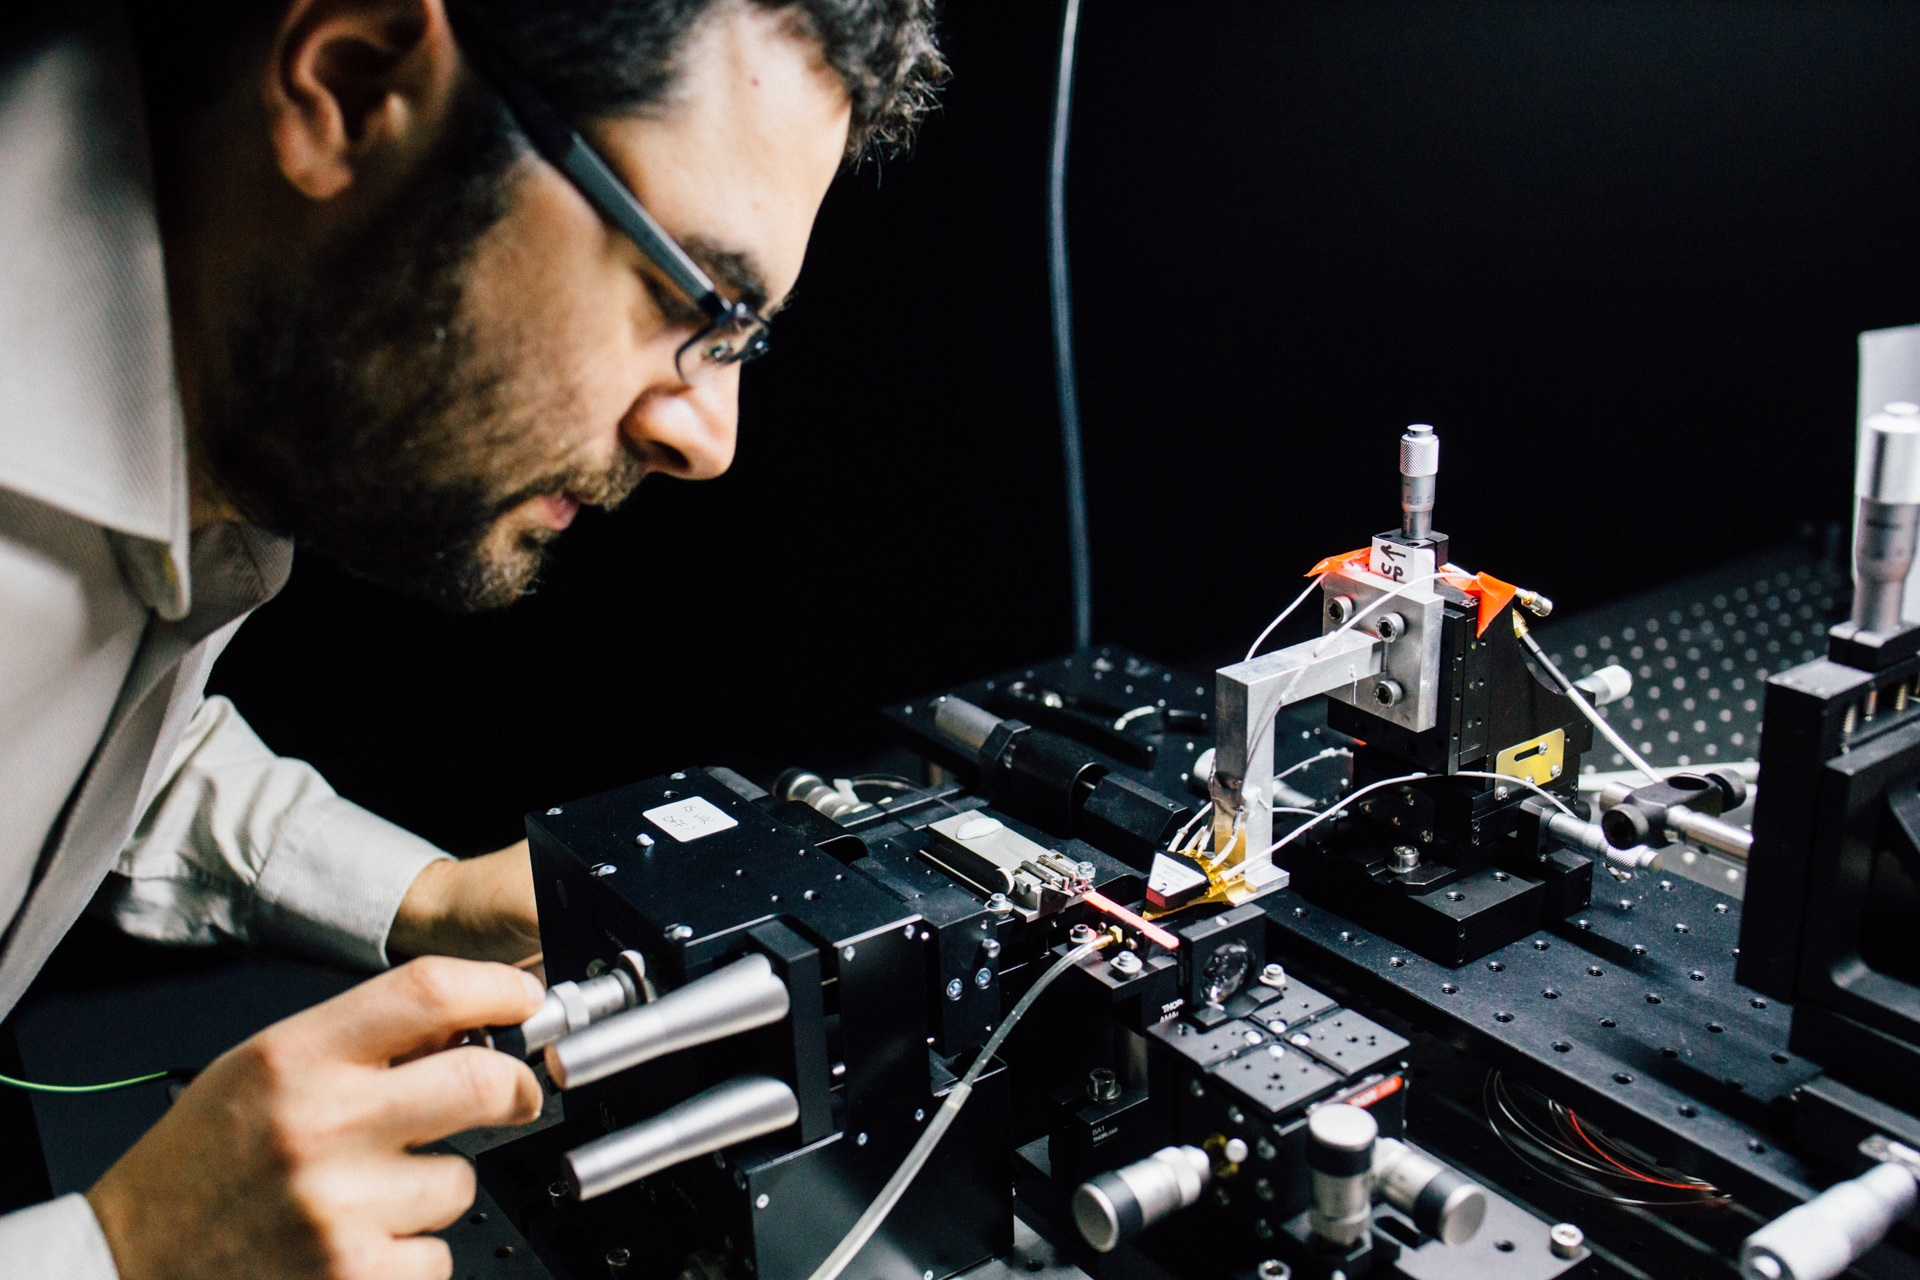 Assoc Prof Mirko Lobino works on the microchip.